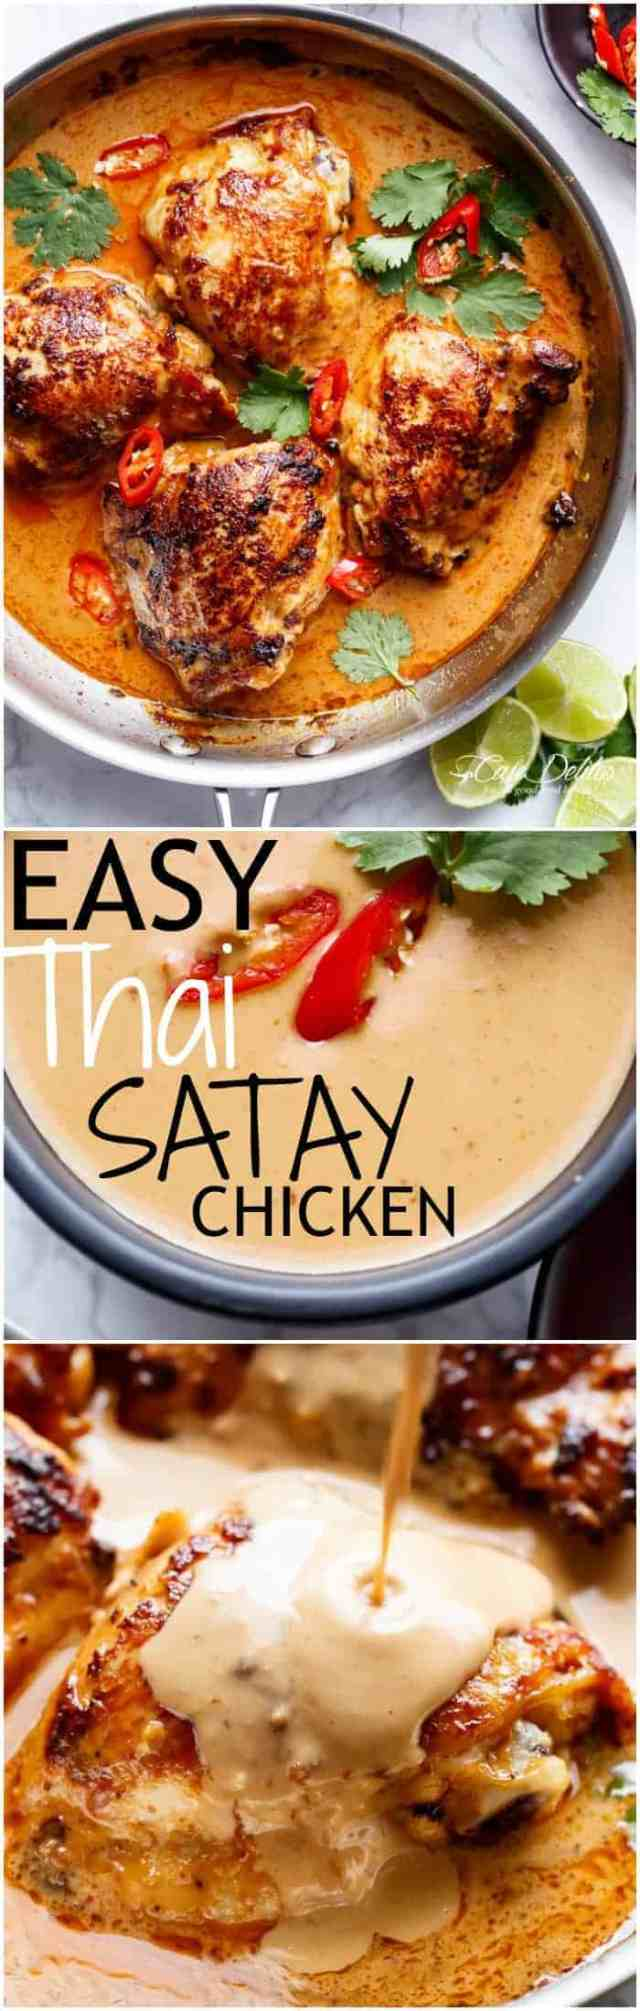 Thai Satay Chicken In A Creamy Peanut Sauce with a special ingredient that makes this satay something spectacular in minutes! | https://cafedelites.com